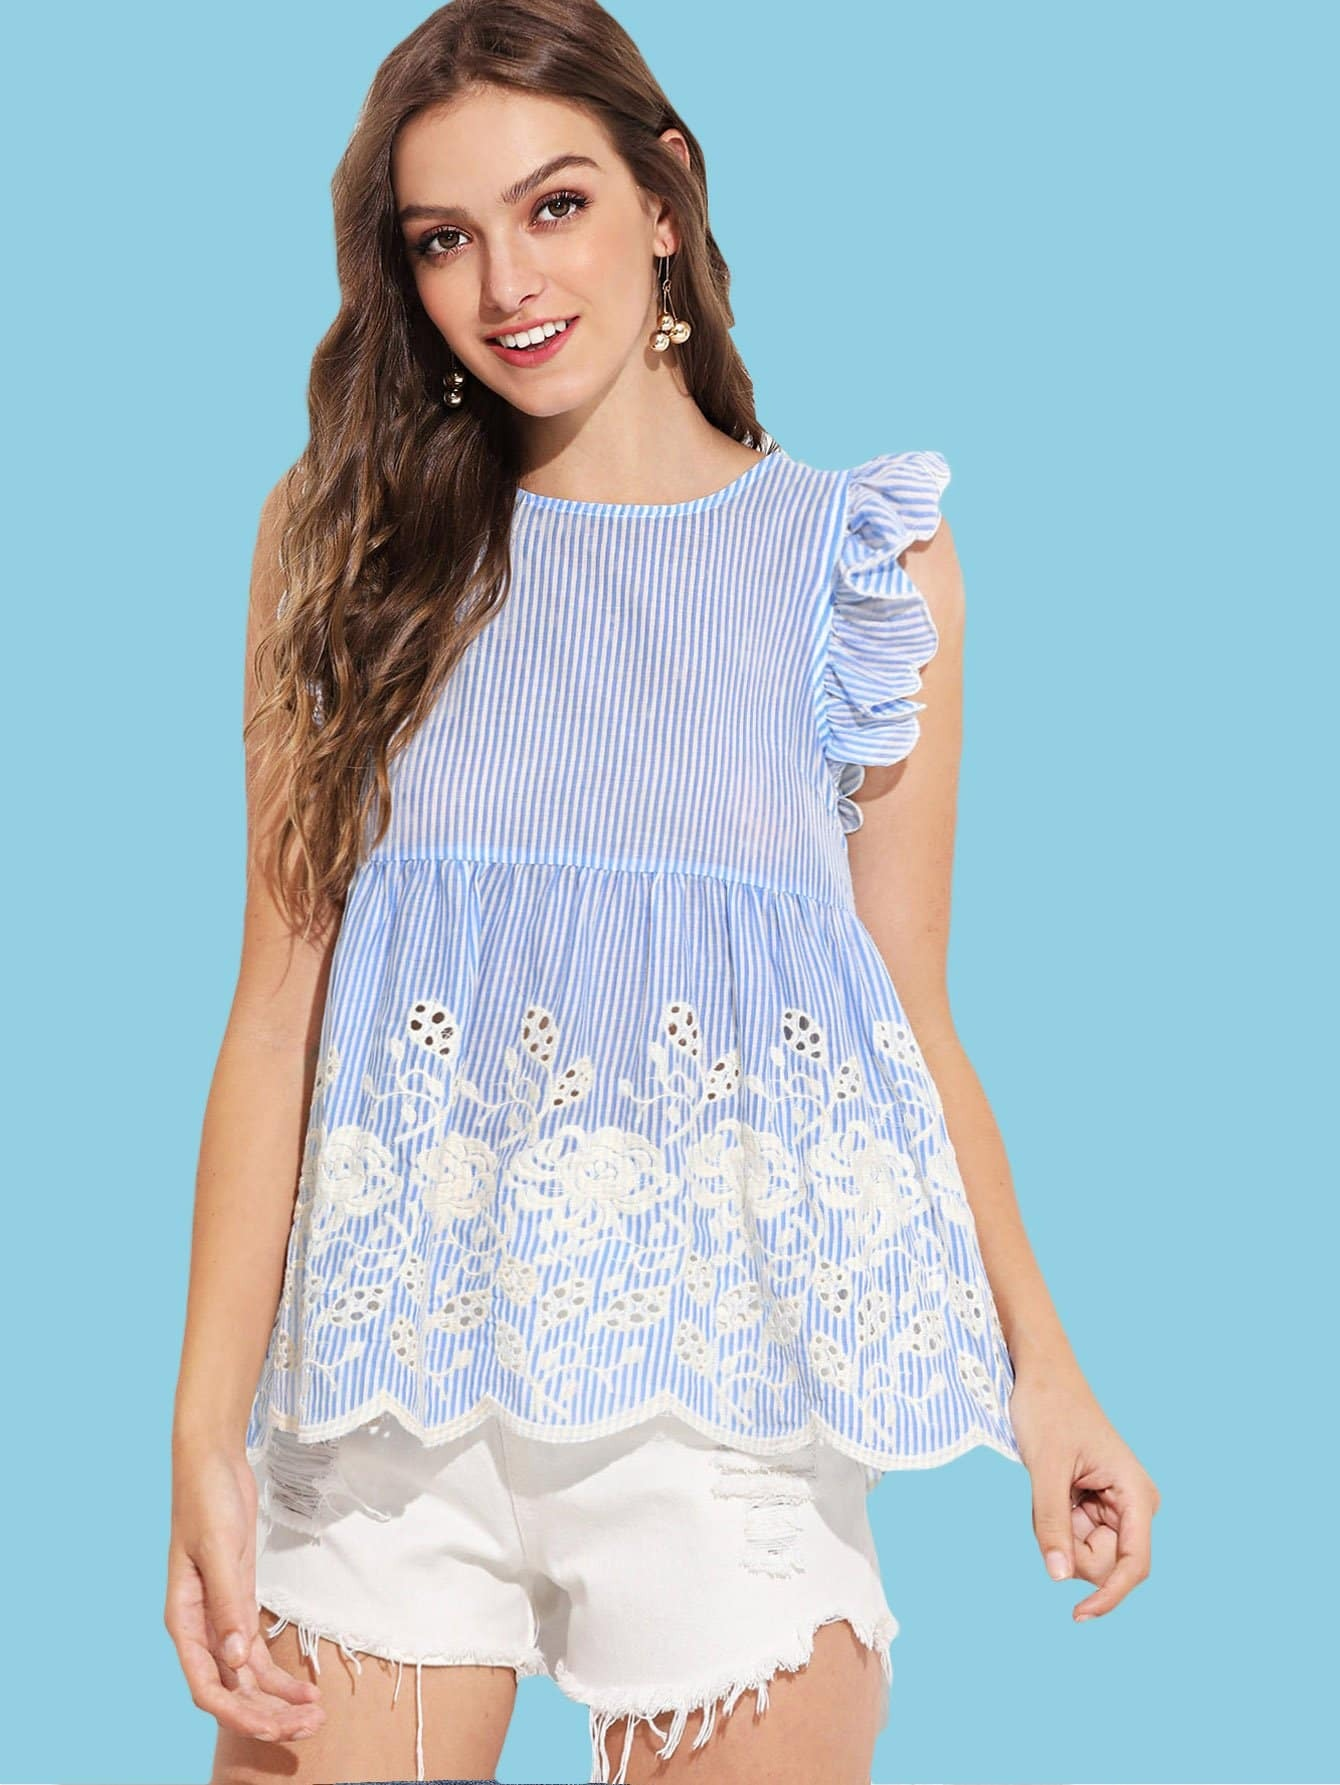 Ruffle Trim Eyelet Embroidered Striped Top mock neck eyelet embroidered ruffle top